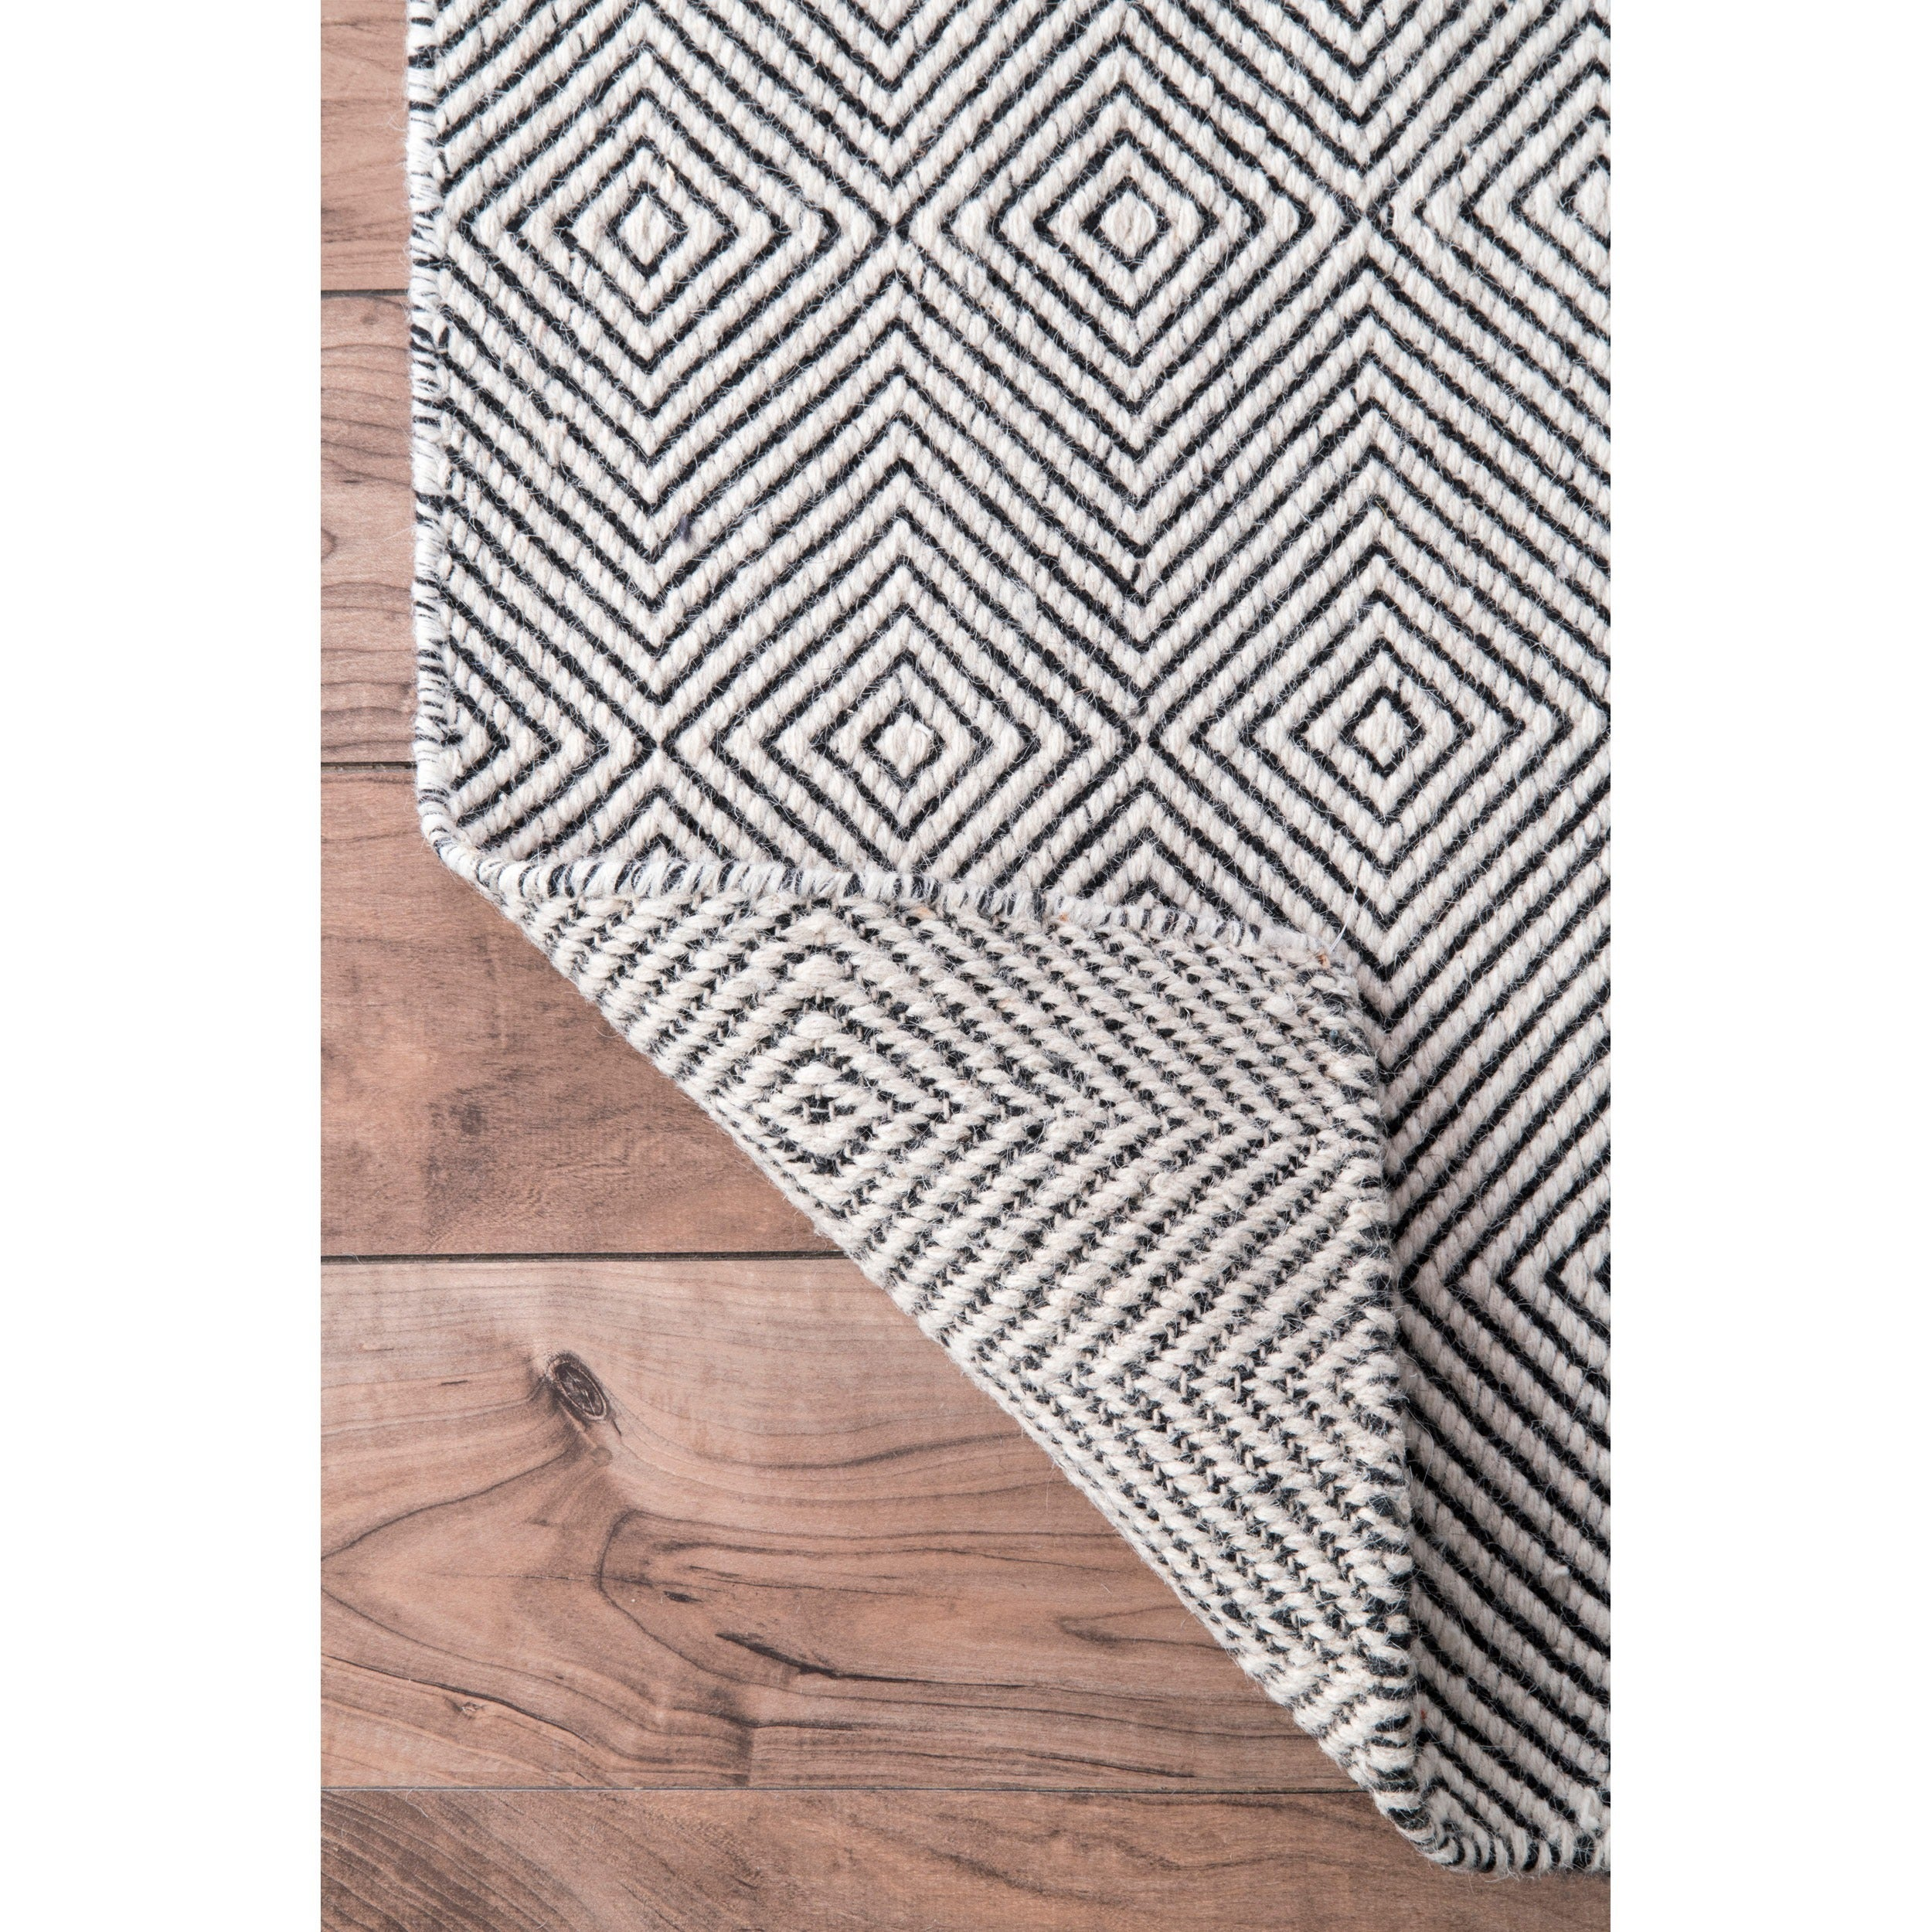 nuLoom Handmade Concentric Diamond Trellis Wool Cotton Rug 8 6 x 11